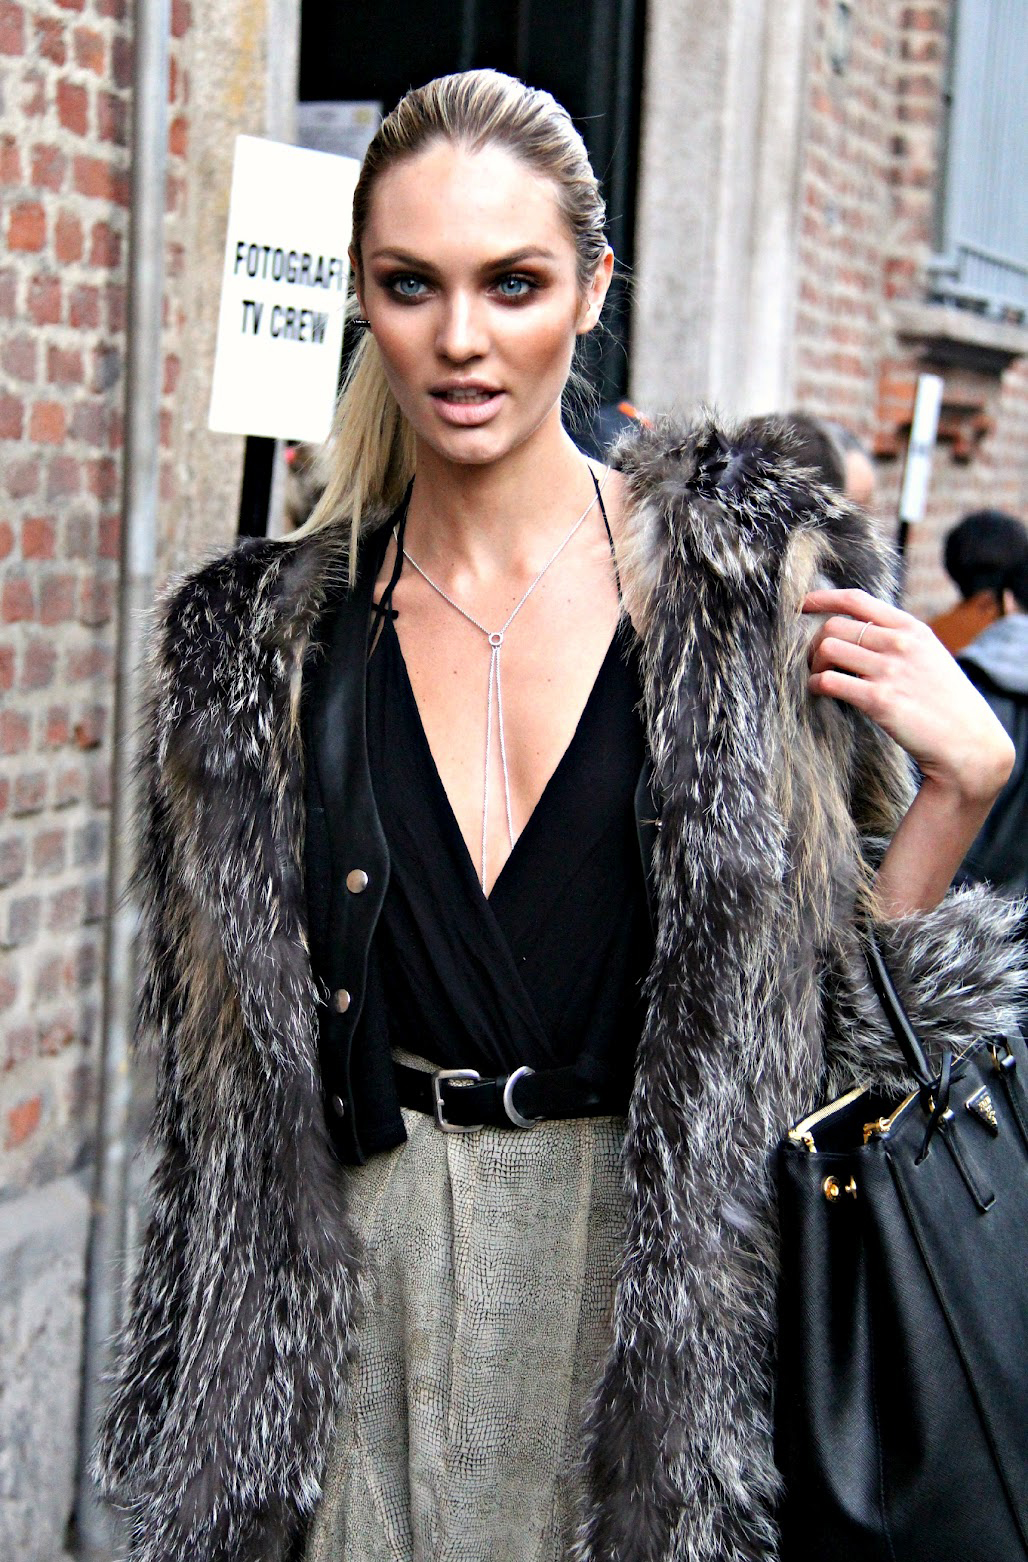 Style icon candice swanepoel moda magazine Best fashion style tumblr